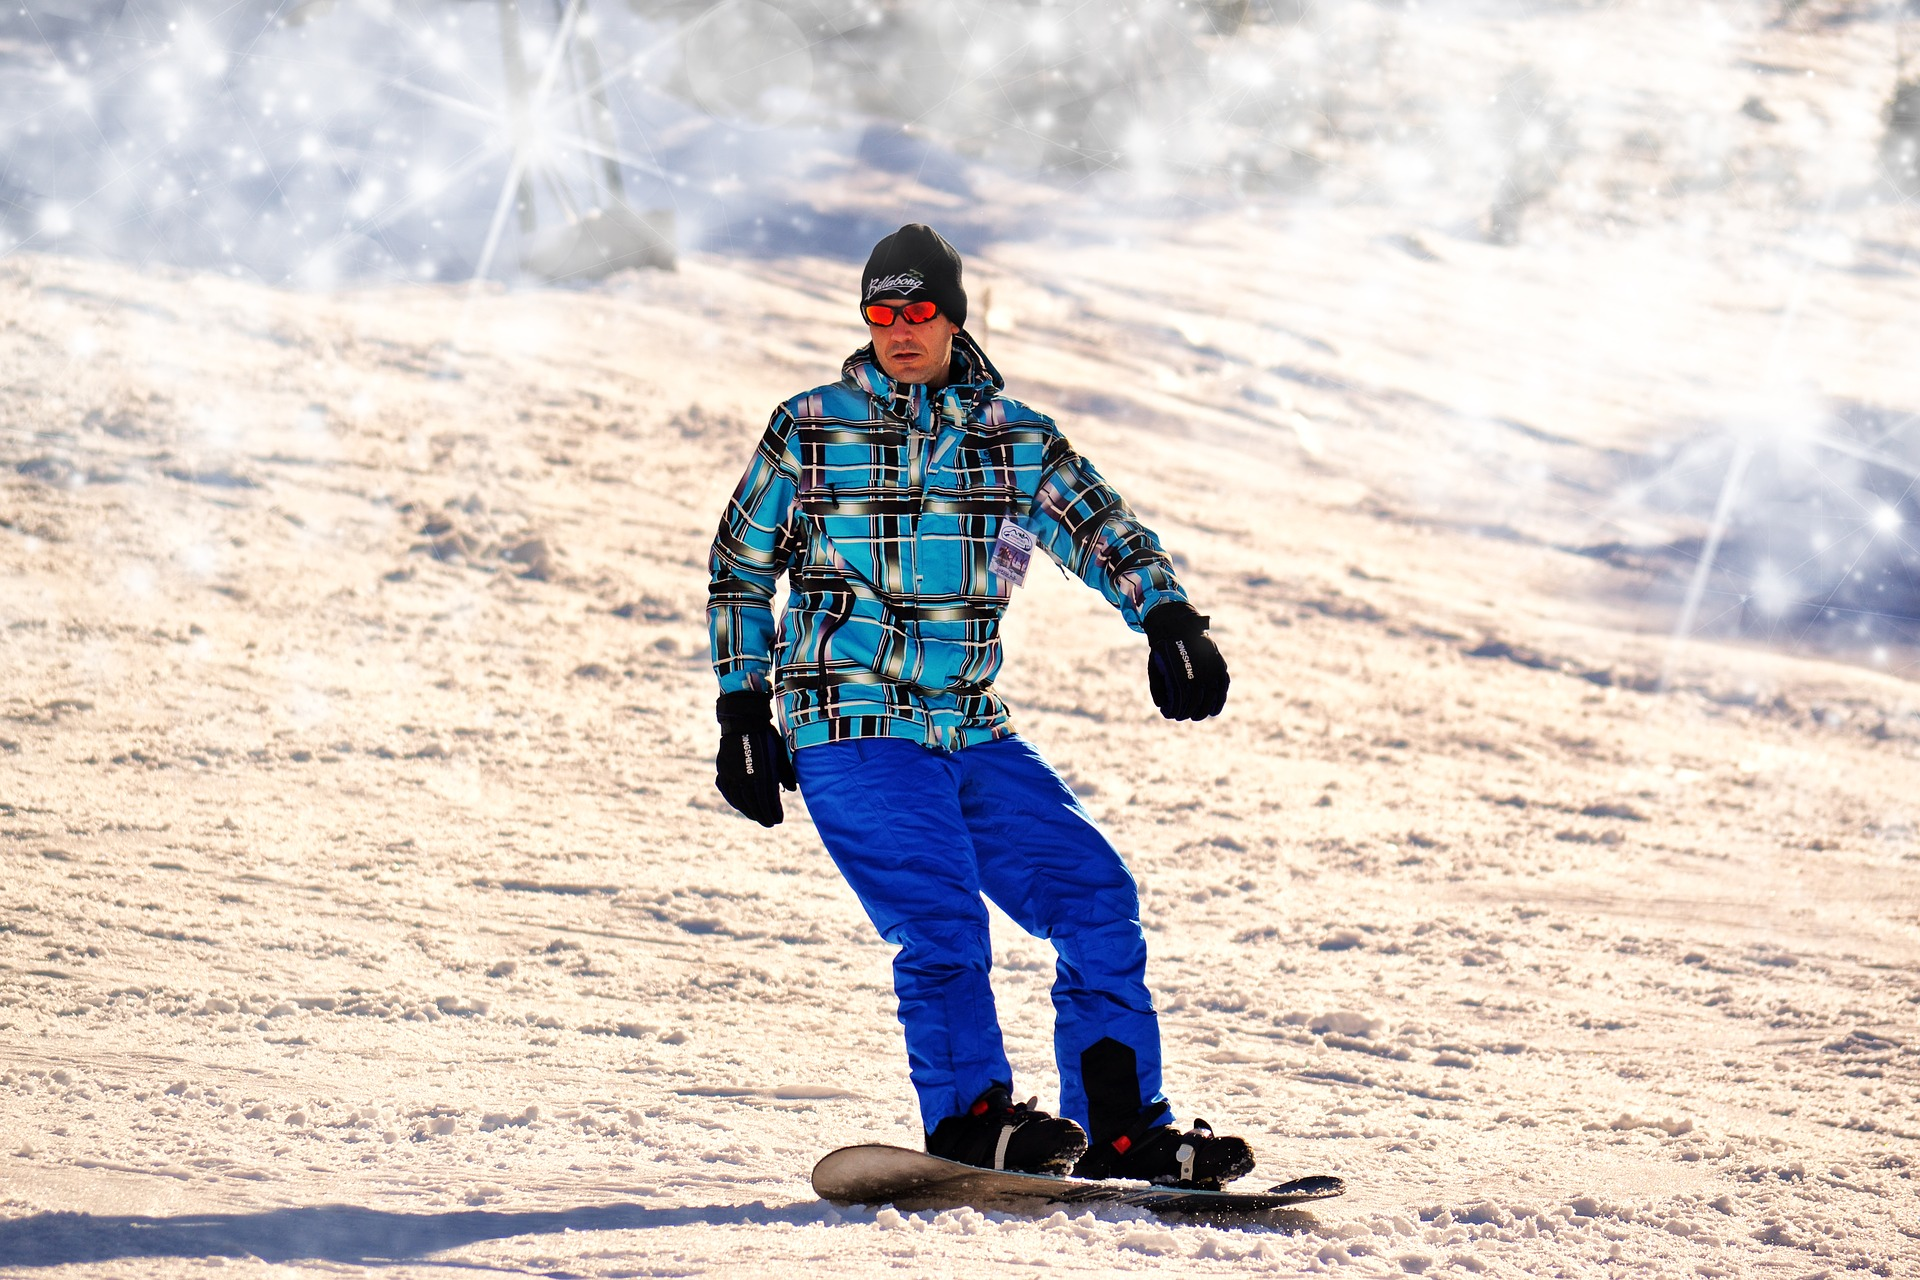 things to do in southampton alpine snowboarding